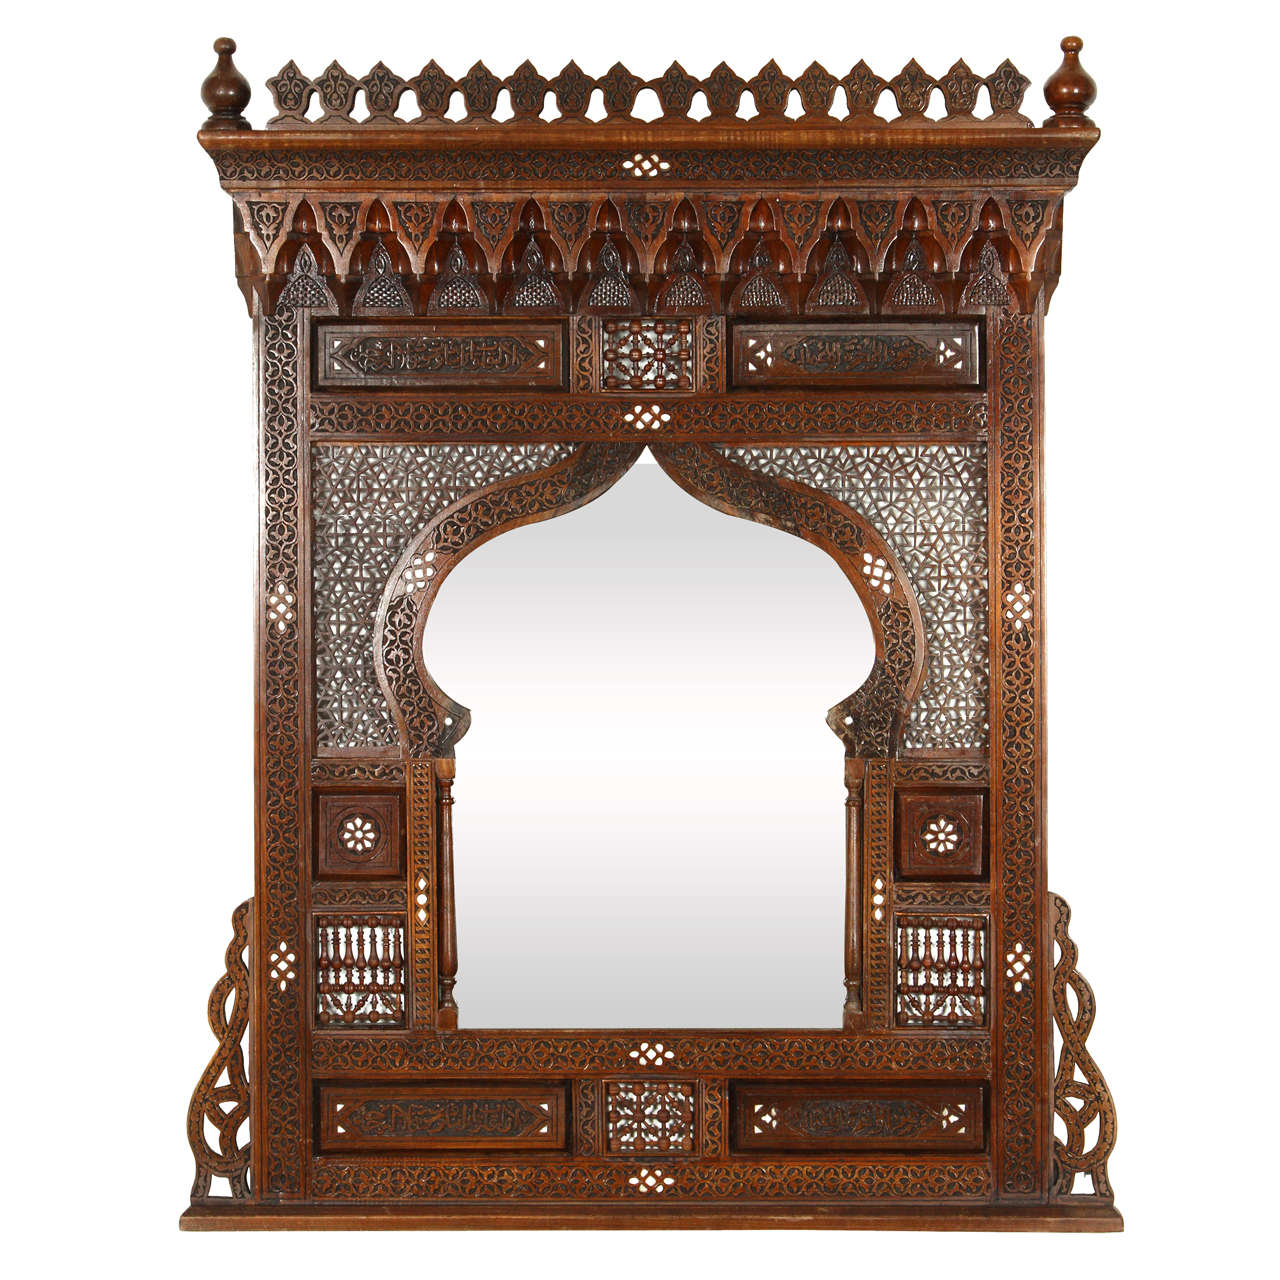 Amazing Large Middle Eastern Syrian Mirror Inlaid With Mother Of Pearl 1